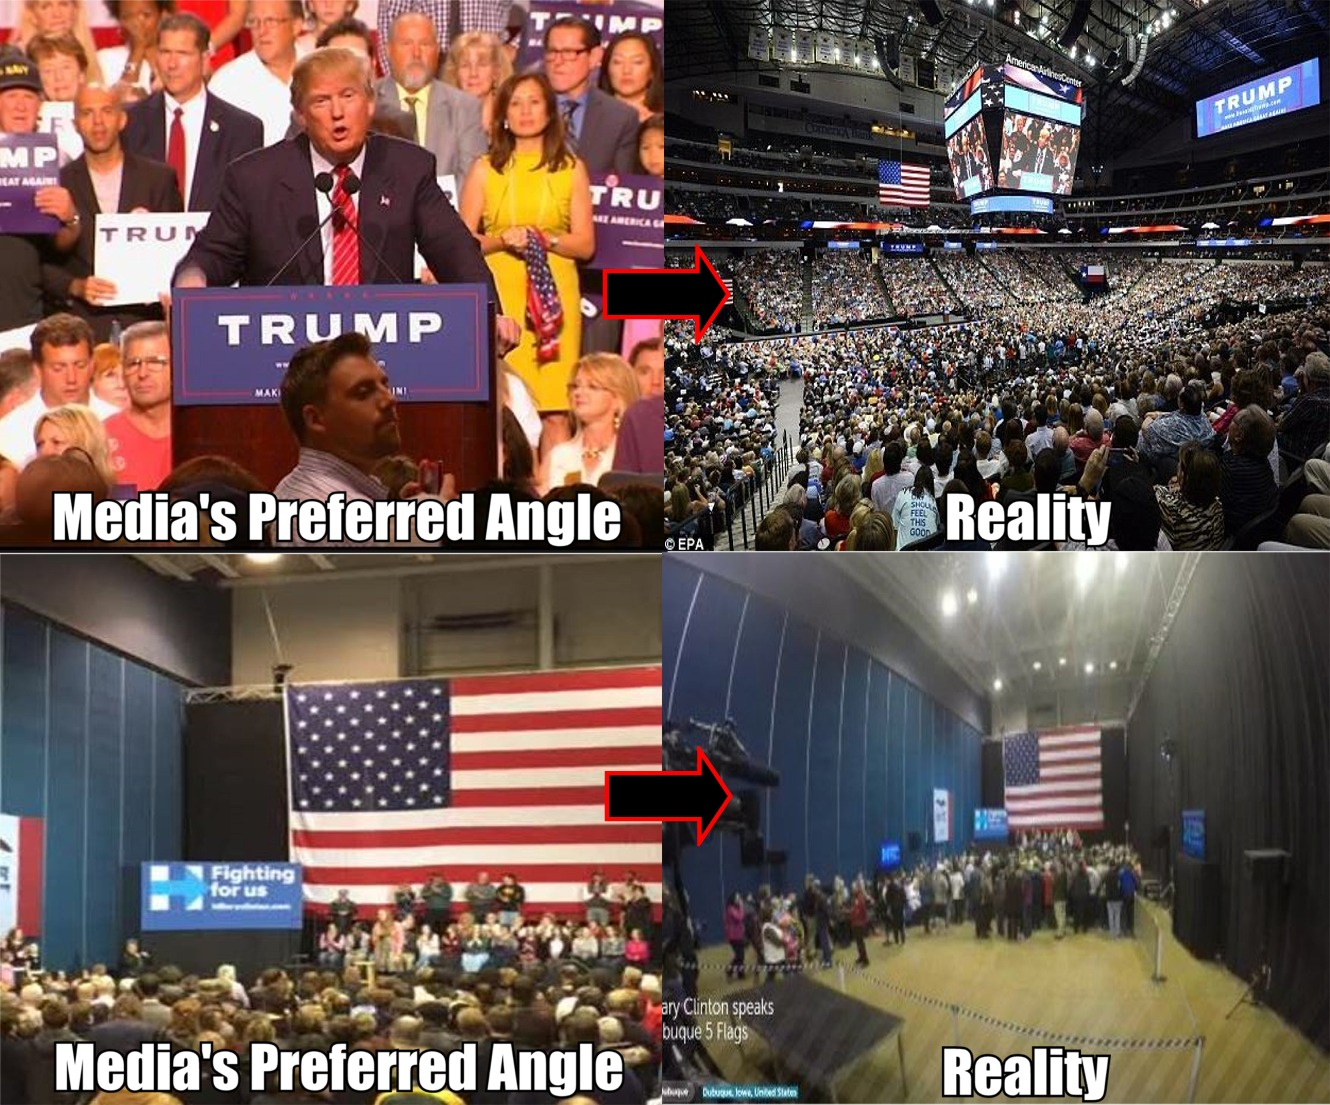 Scumbag media deception.